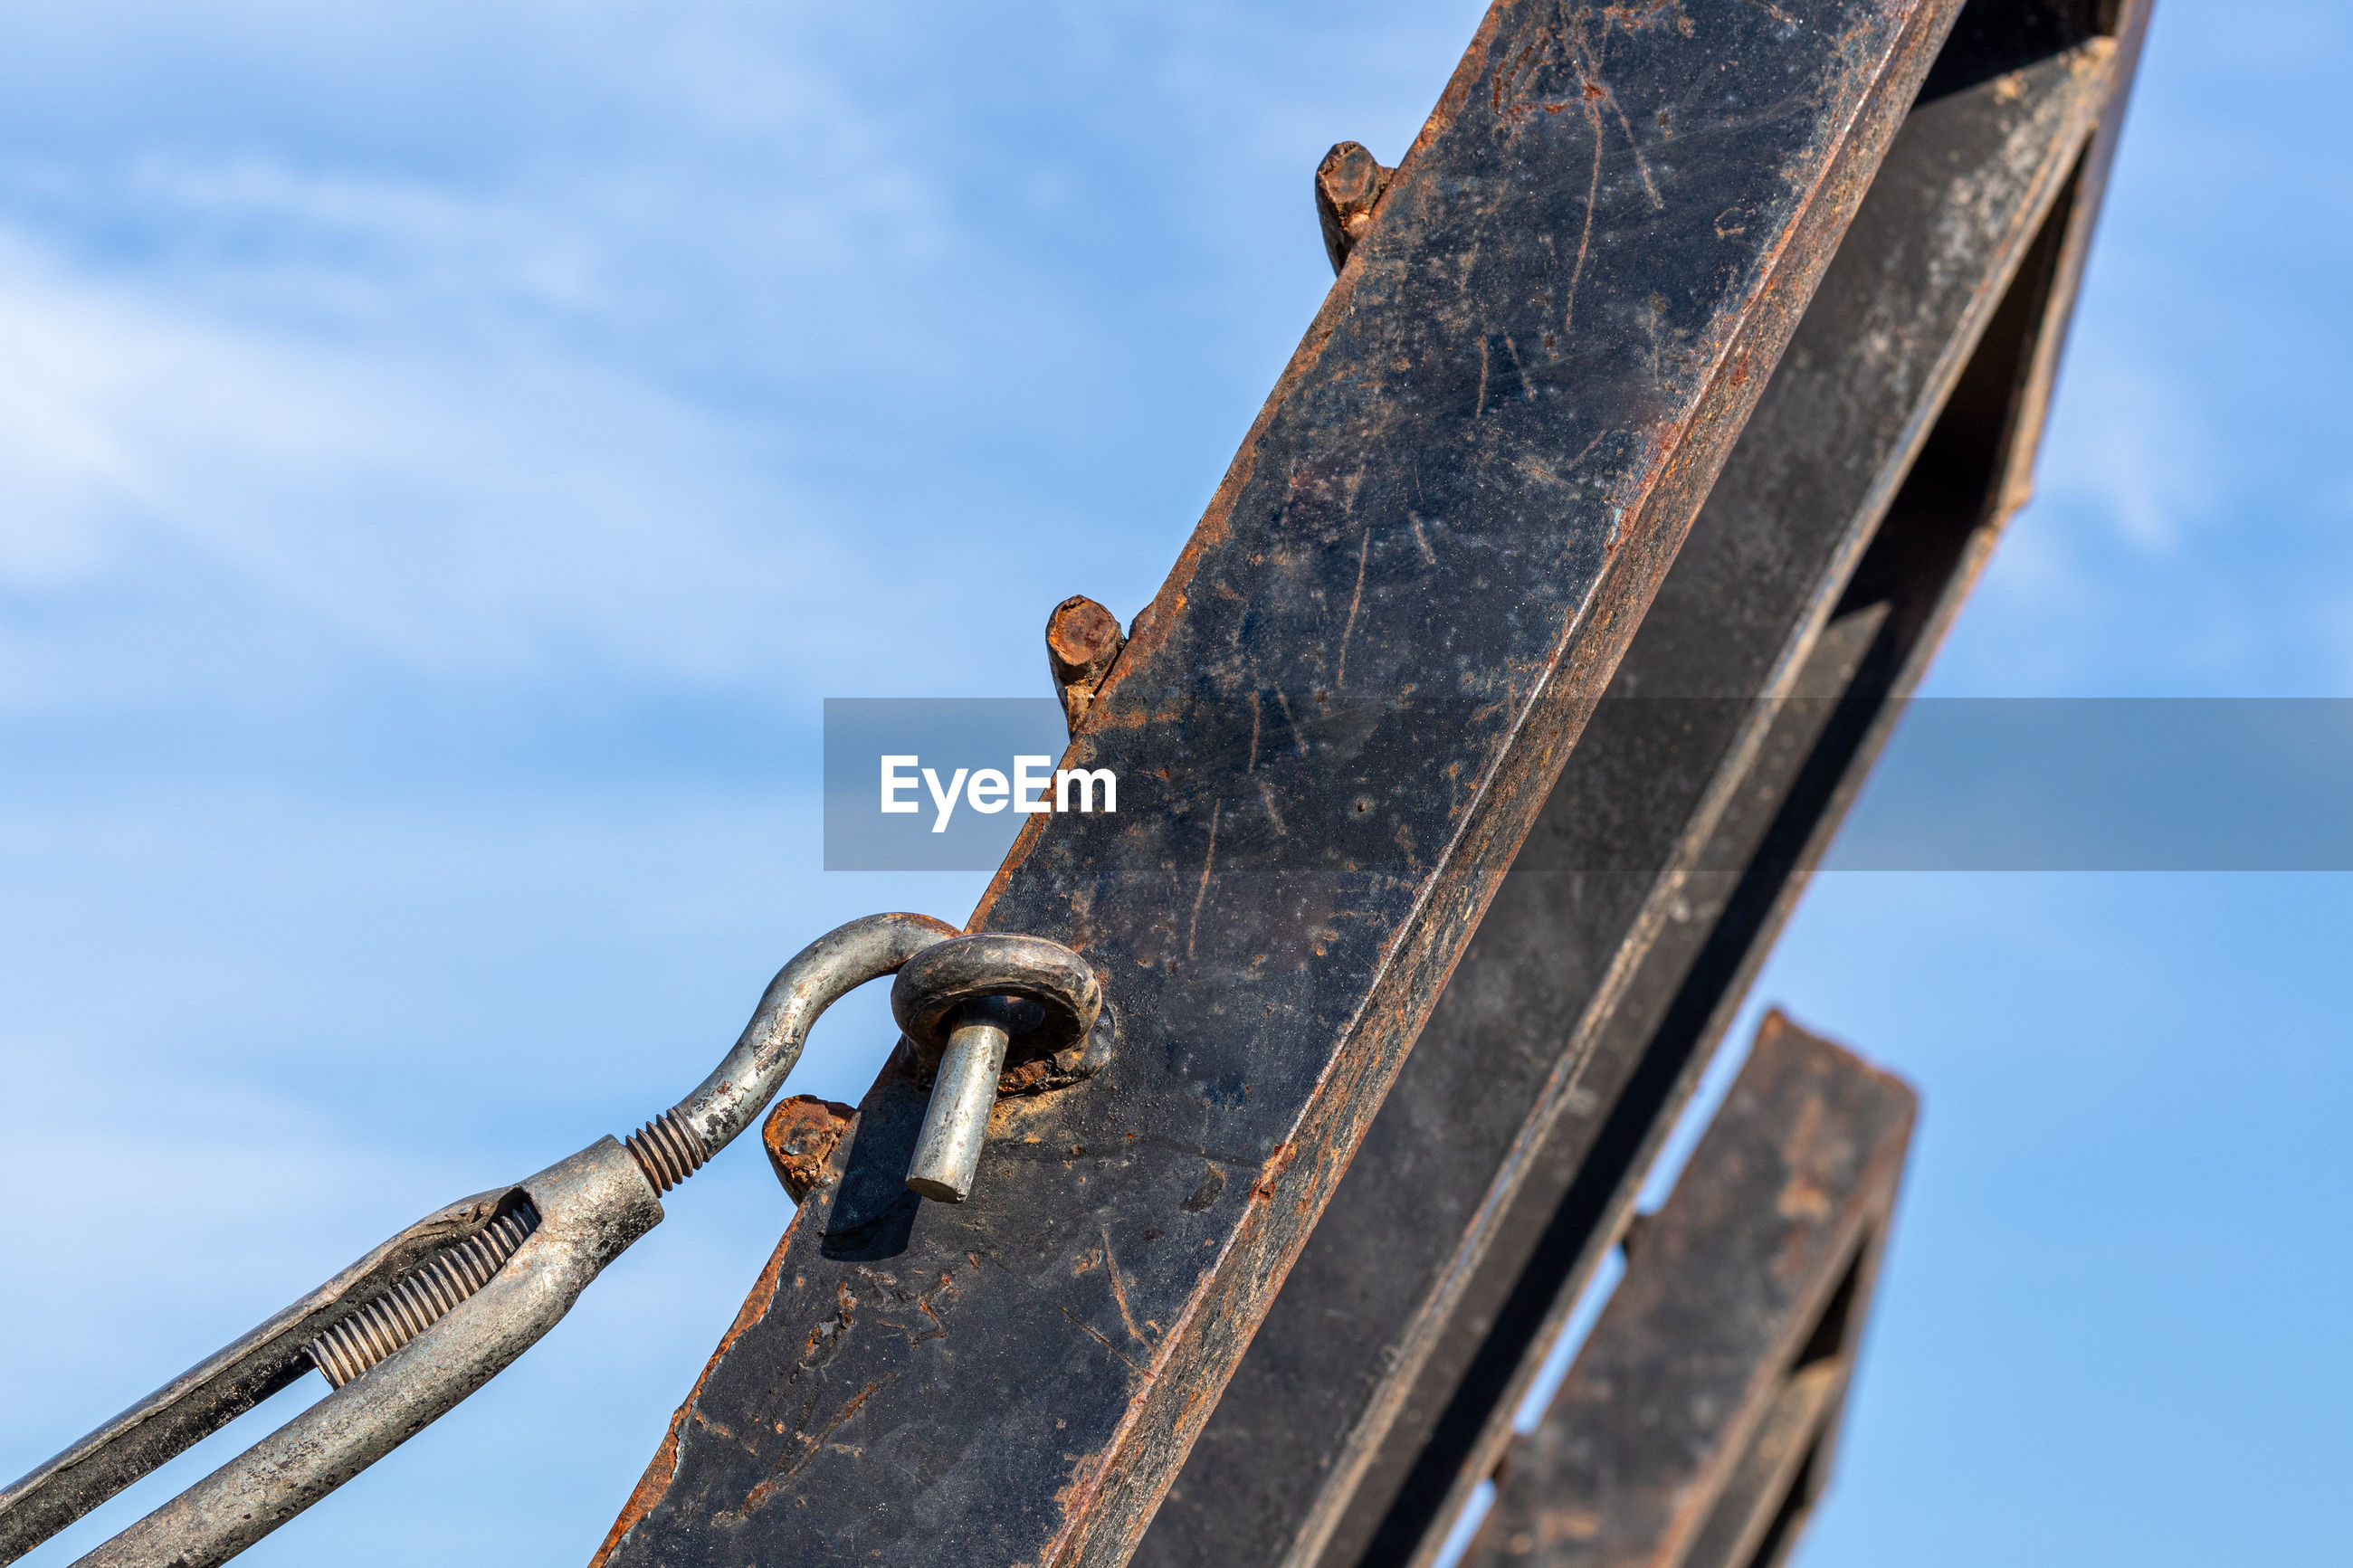 LOW ANGLE VIEW OF OLD RUSTY METALLIC STRUCTURE AGAINST SKY